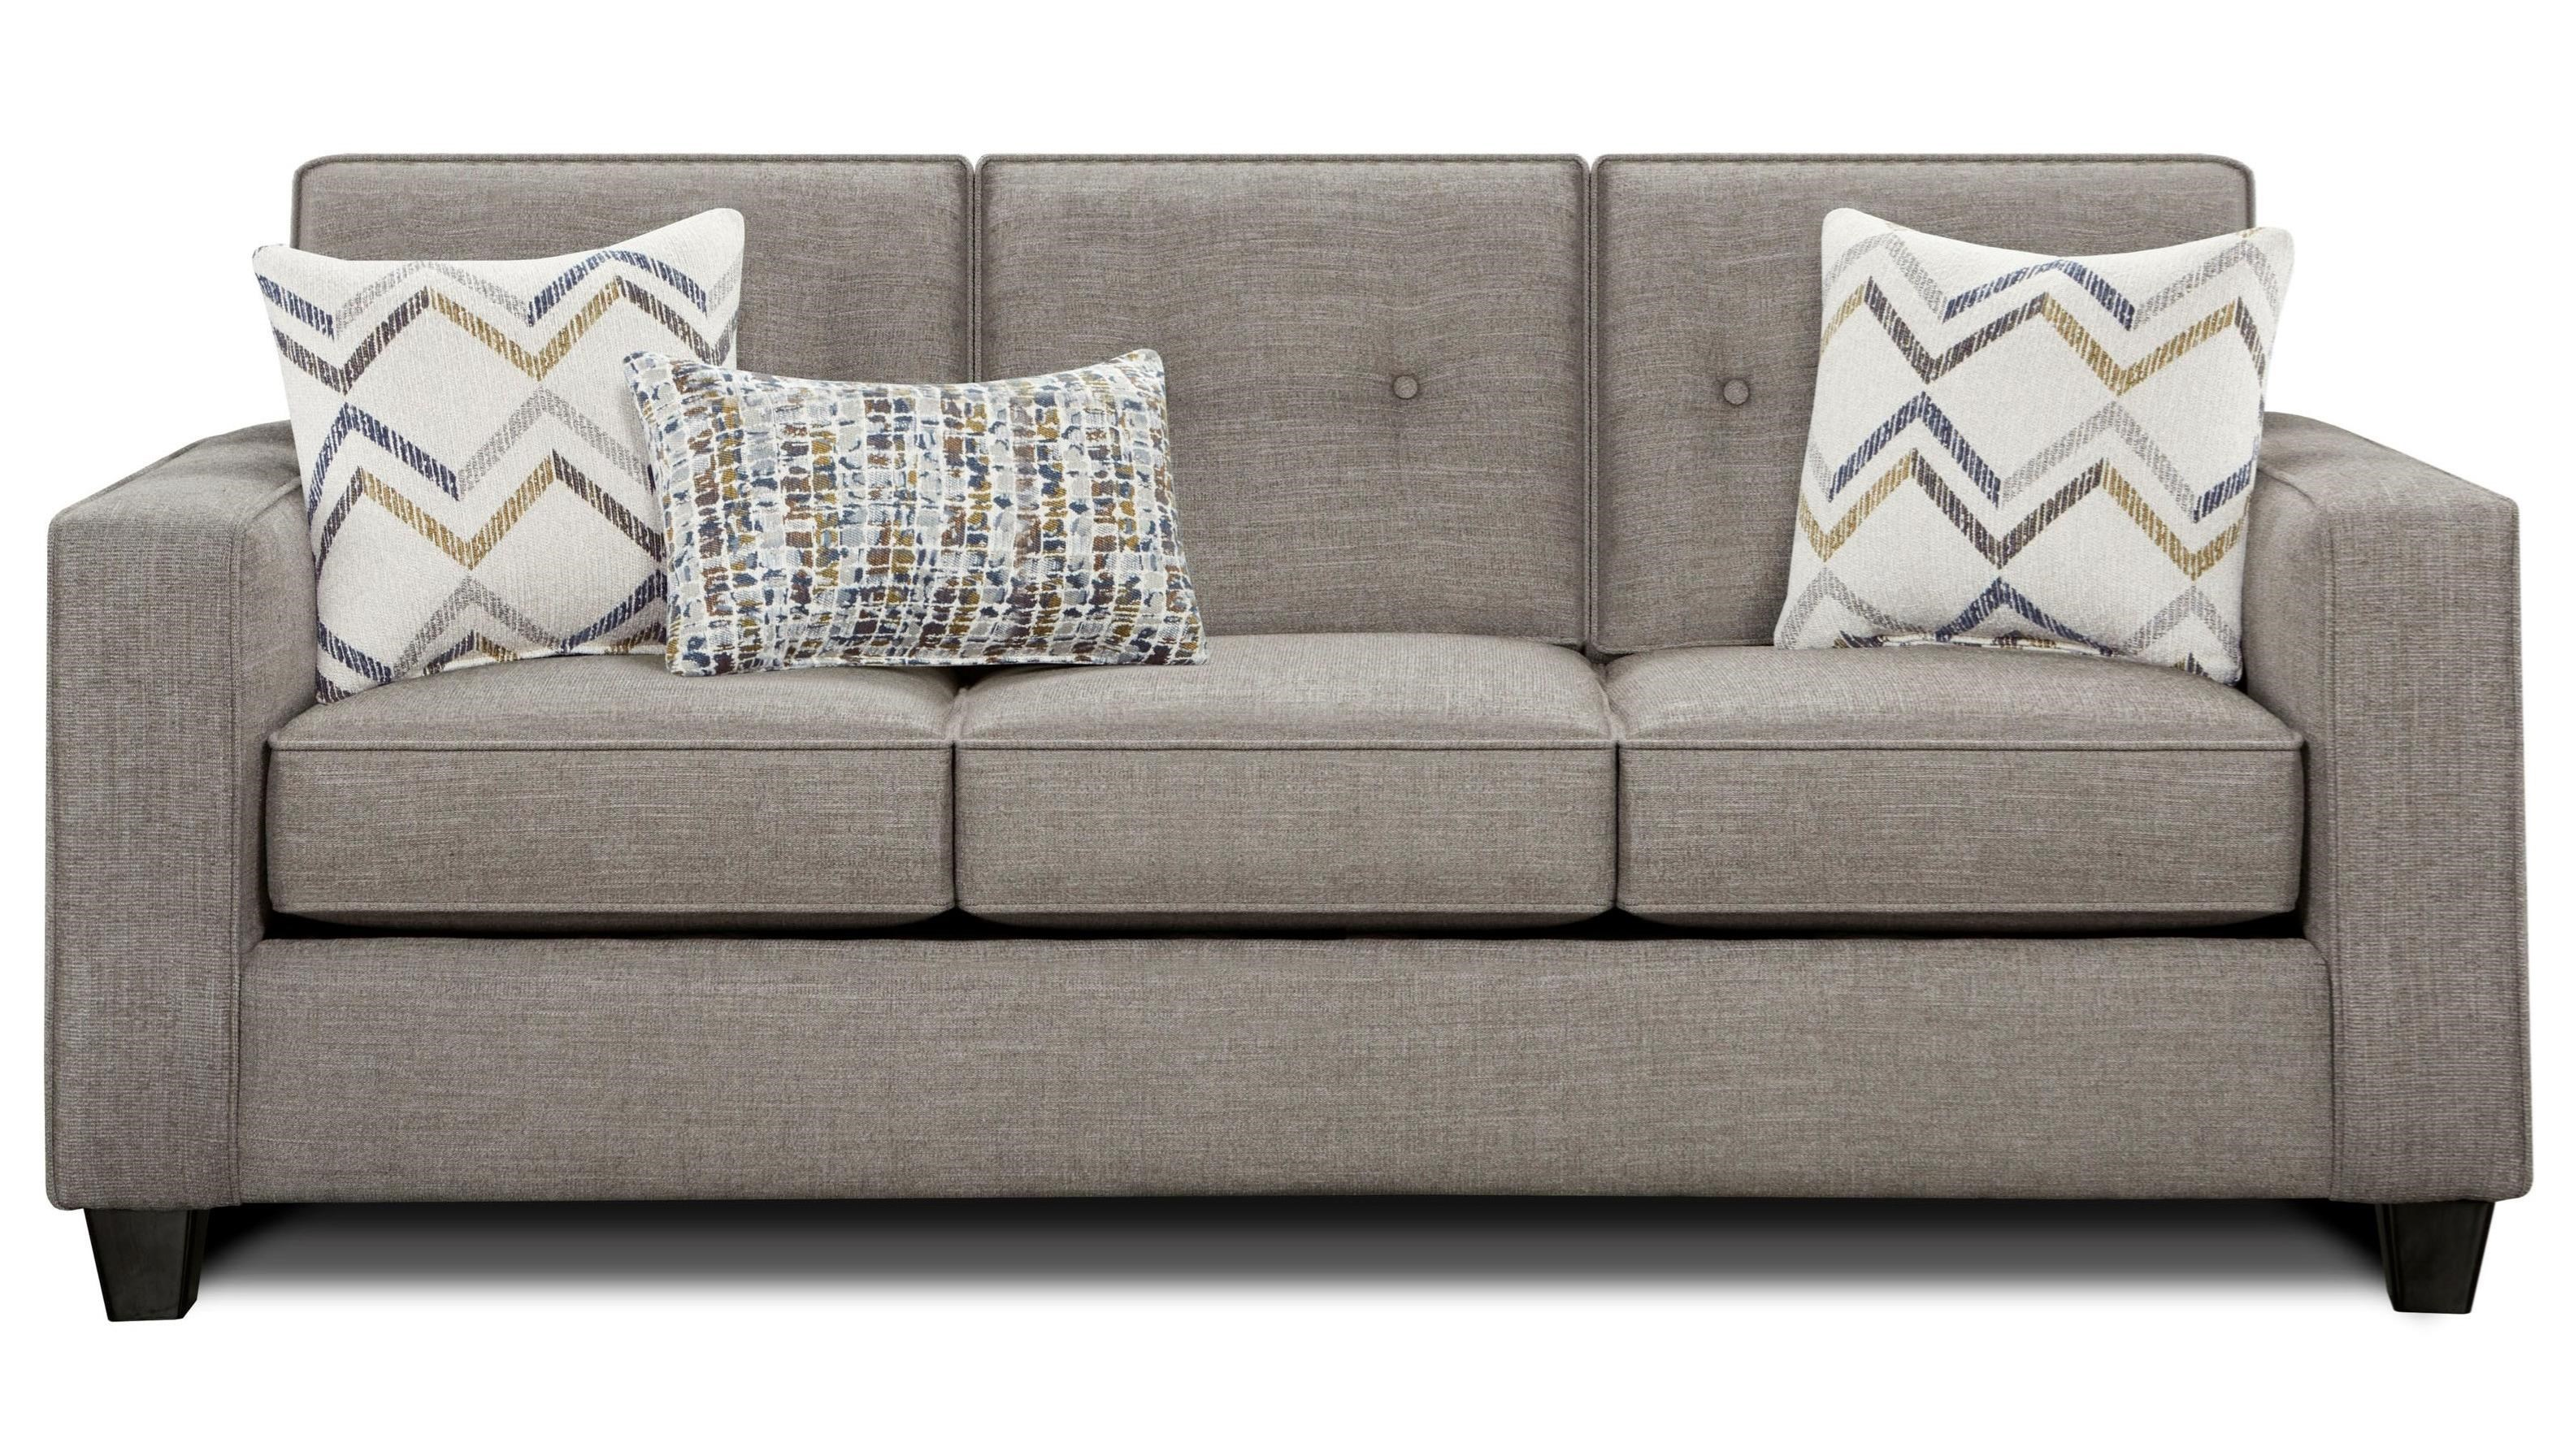 Fusion Furniture 3570B Sleeper Sofa With Track Arms And Button Tufted  Cushions